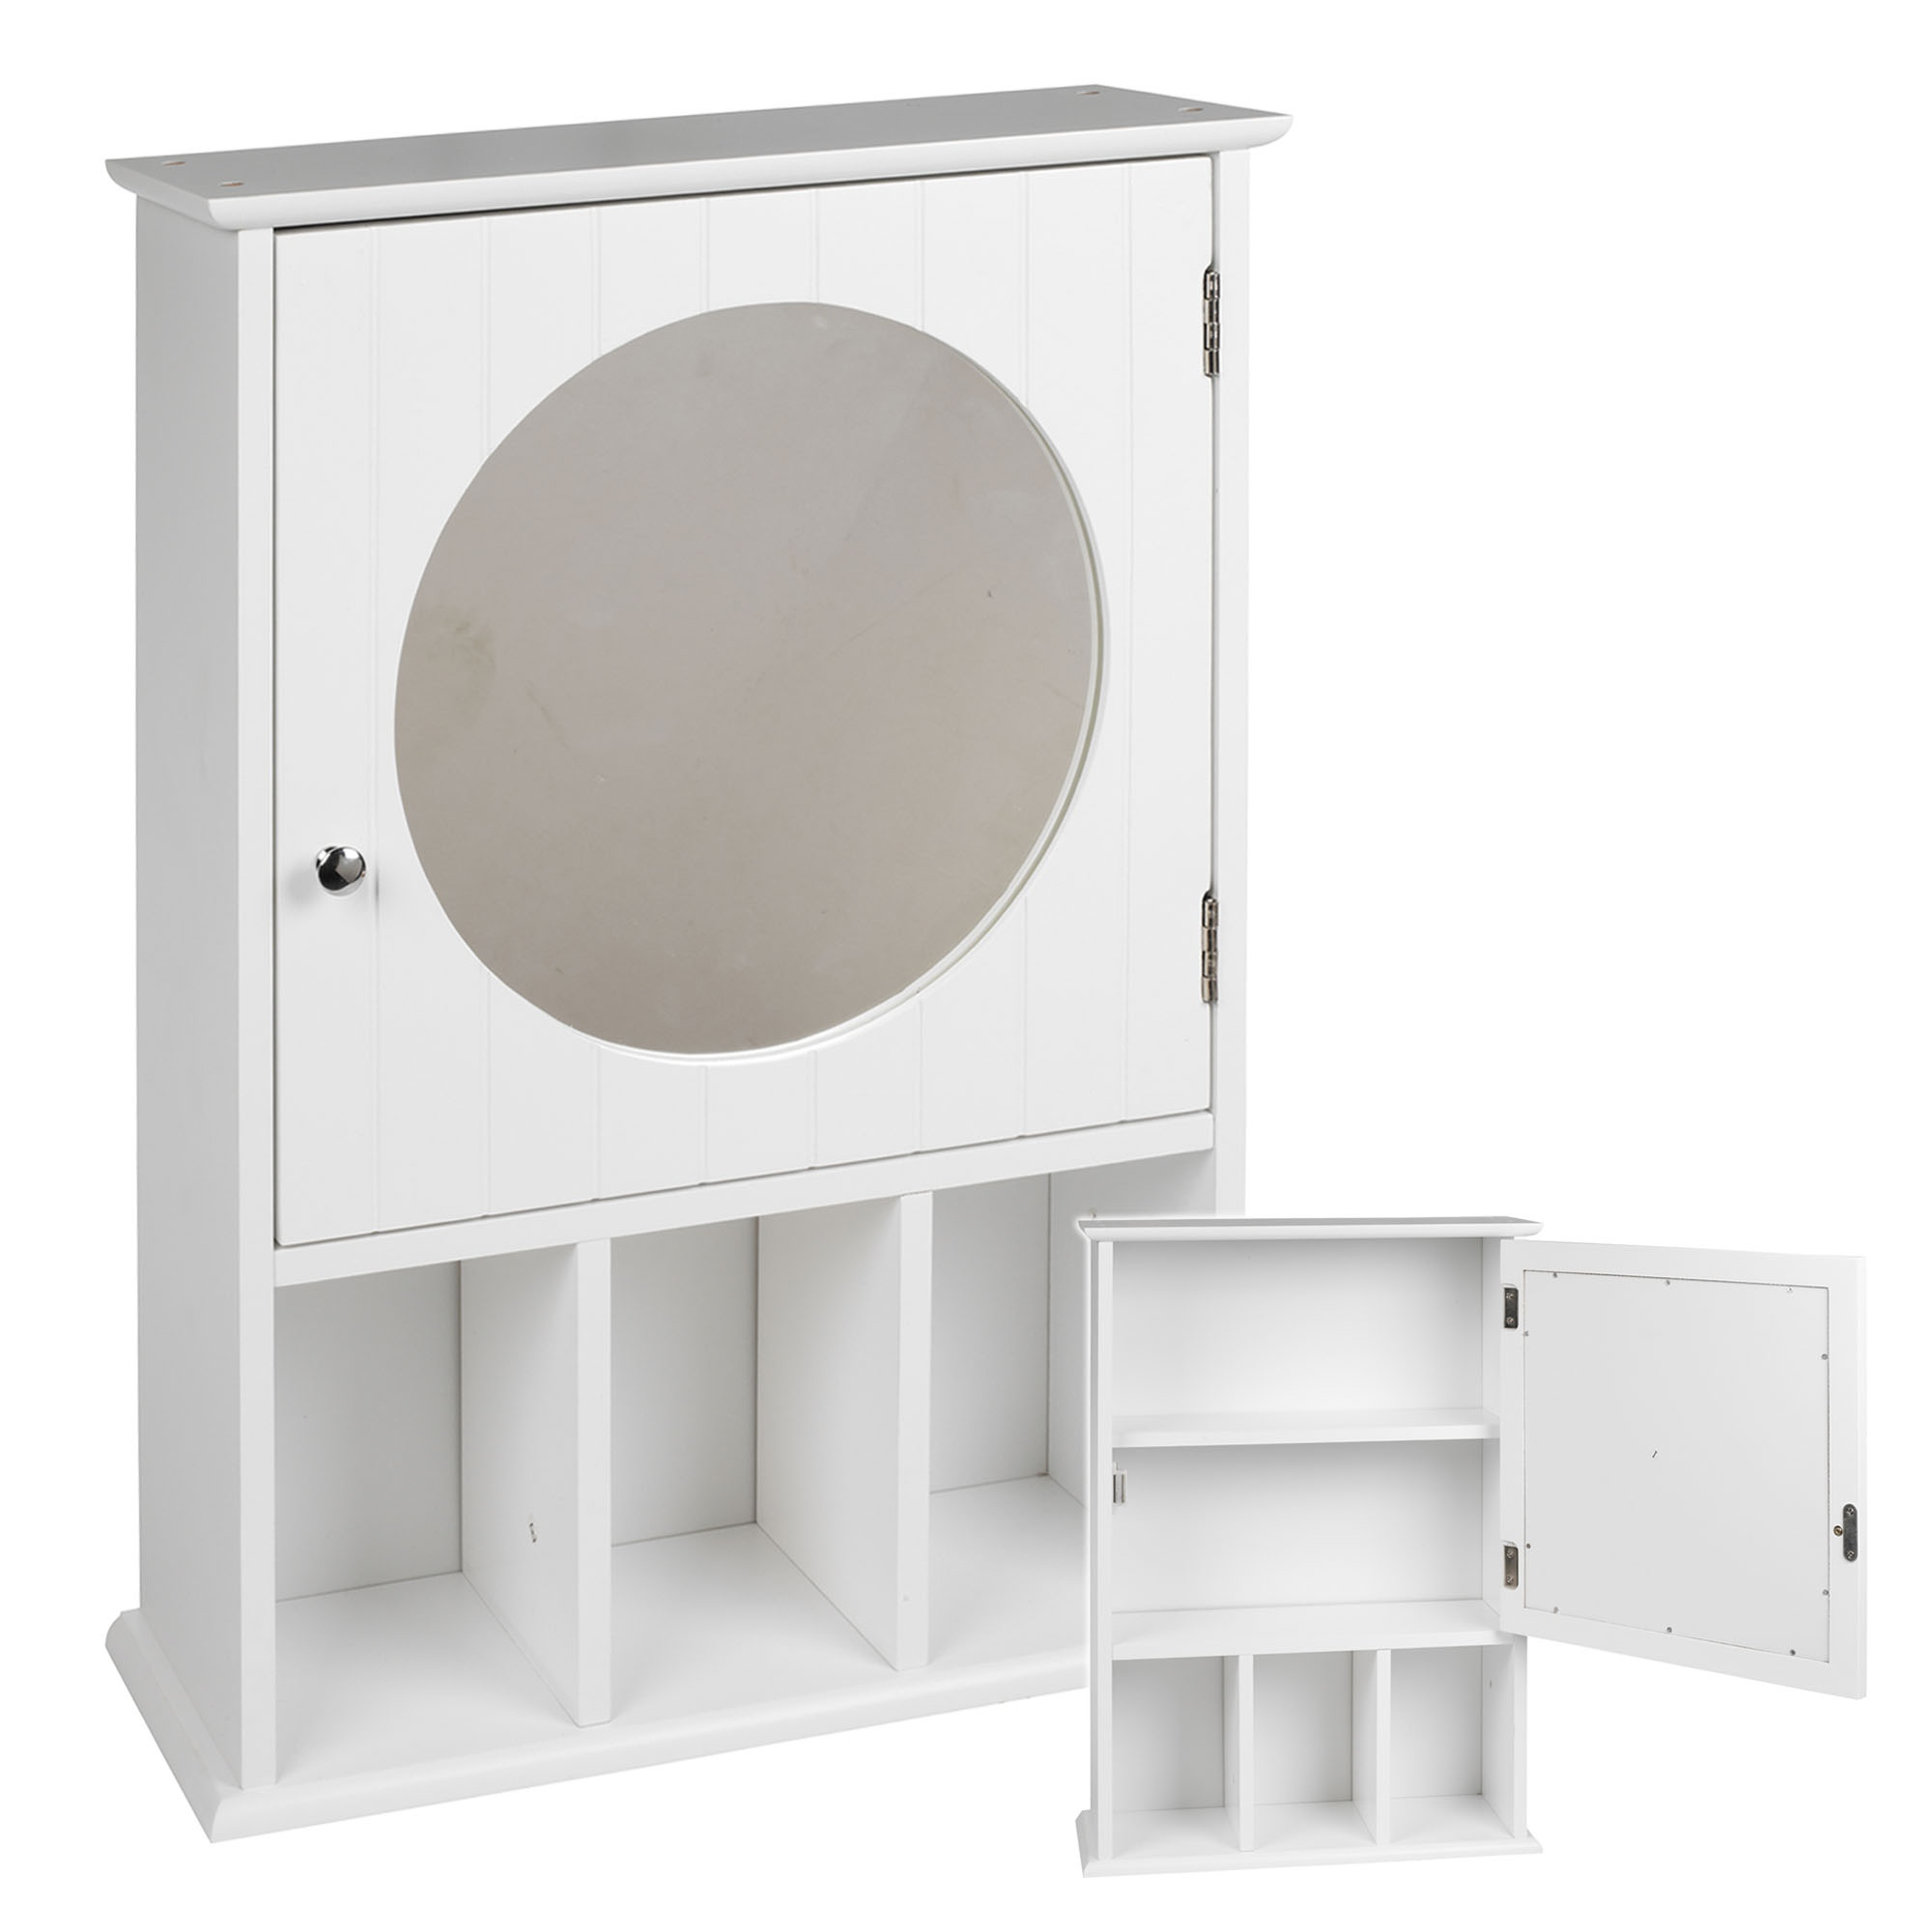 Wickes Bathroom Cabinet - White wooden wall mounted mdf bathroom mirror cabinet cupboard